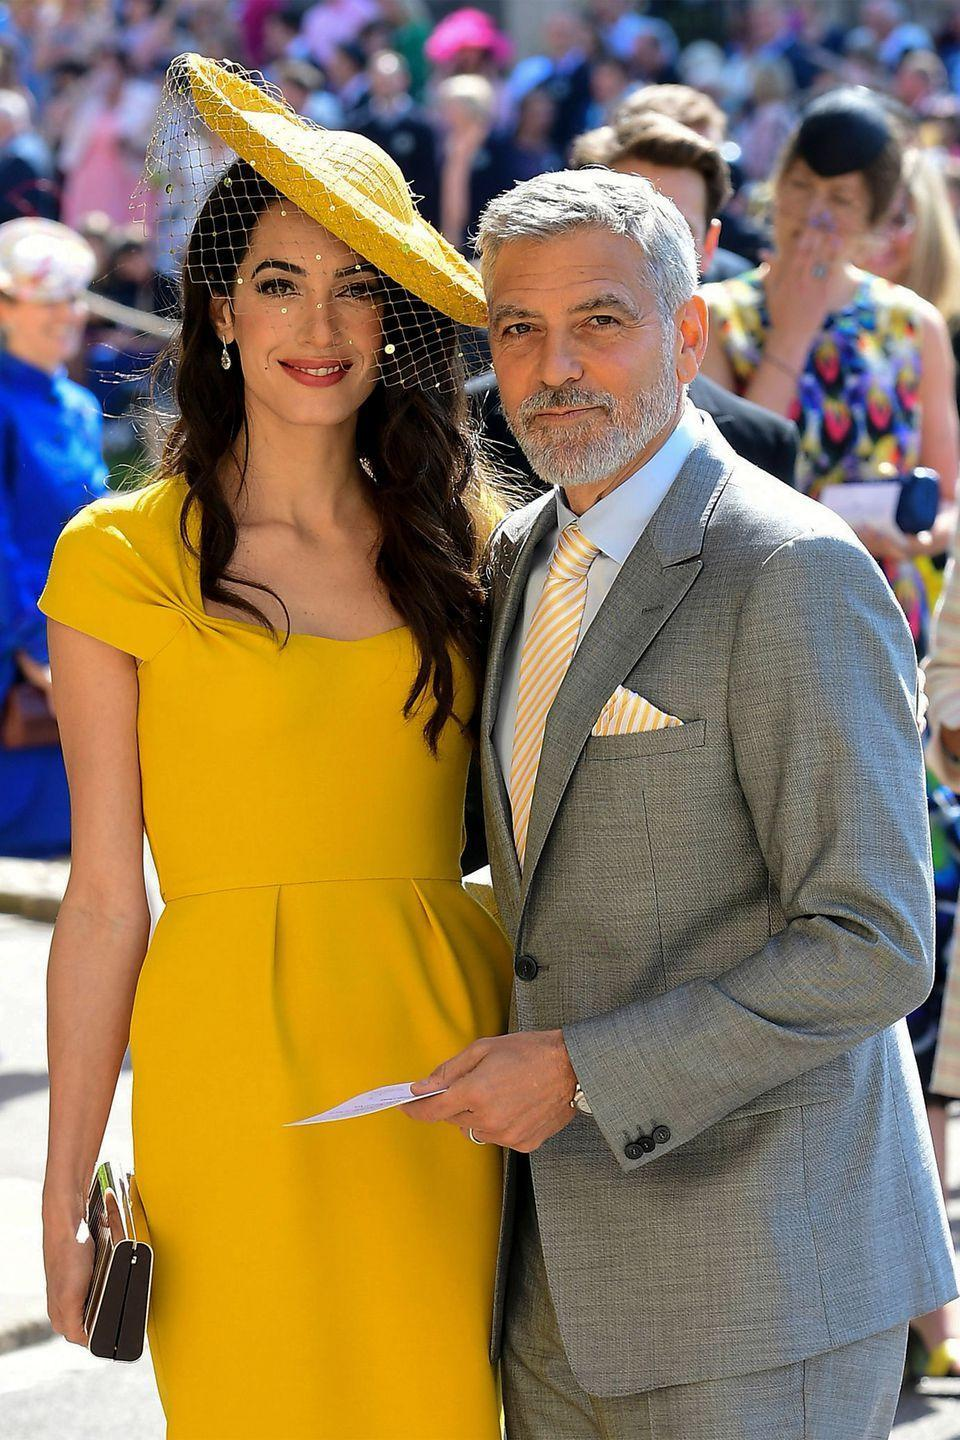 "<p>In 2014, the world was shocked when famed bachelor George Clooney, then 52 years old, announced his engagement to international human rights lawyer, then 35-year-old Amal Alamuddin. The couple officially tied the knot in September of 2014 (<a href=""https://www.harpersbazaar.com/celebrity/latest/a15947657/how-george-clooney-first-met-amal/"" rel=""nofollow noopener"" target=""_blank"" data-ylk=""slk:just a year after they met"" class=""link rapid-noclick-resp"">just a year after they met</a>) with a beautiful <a href=""https://www.harpersbazaar.com/uk/bazaar-brides/news/g32062/george-clooney-and-amal-alamuddins-wedding-in-pictures/"" rel=""nofollow noopener"" target=""_blank"" data-ylk=""slk:Venetian wedding"" class=""link rapid-noclick-resp"">Venetian wedding</a>, and <a href=""https://www.harpersbazaar.com/celebrity/latest/a9956228/amal-clooney-gives-birth-twins/"" rel=""nofollow noopener"" target=""_blank"" data-ylk=""slk:welcomed two children"" class=""link rapid-noclick-resp"">welcomed two children</a>, twins Ella and Alexander, in June of 2017.</p>"